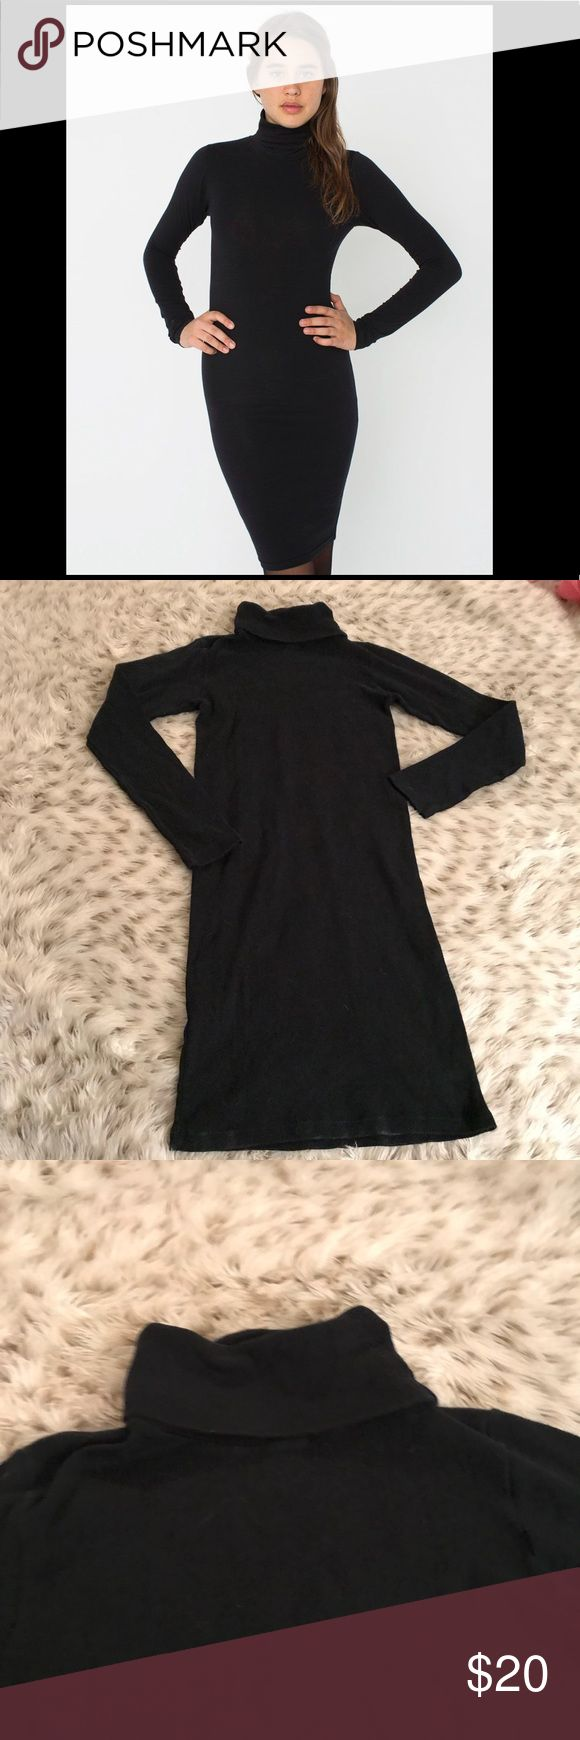 American Apparel black turtleneck dress American Apparel black turtle neck dress! Size small! Stretchy! Excellent used condition! Length is 35 inches! American Apparel Dresses